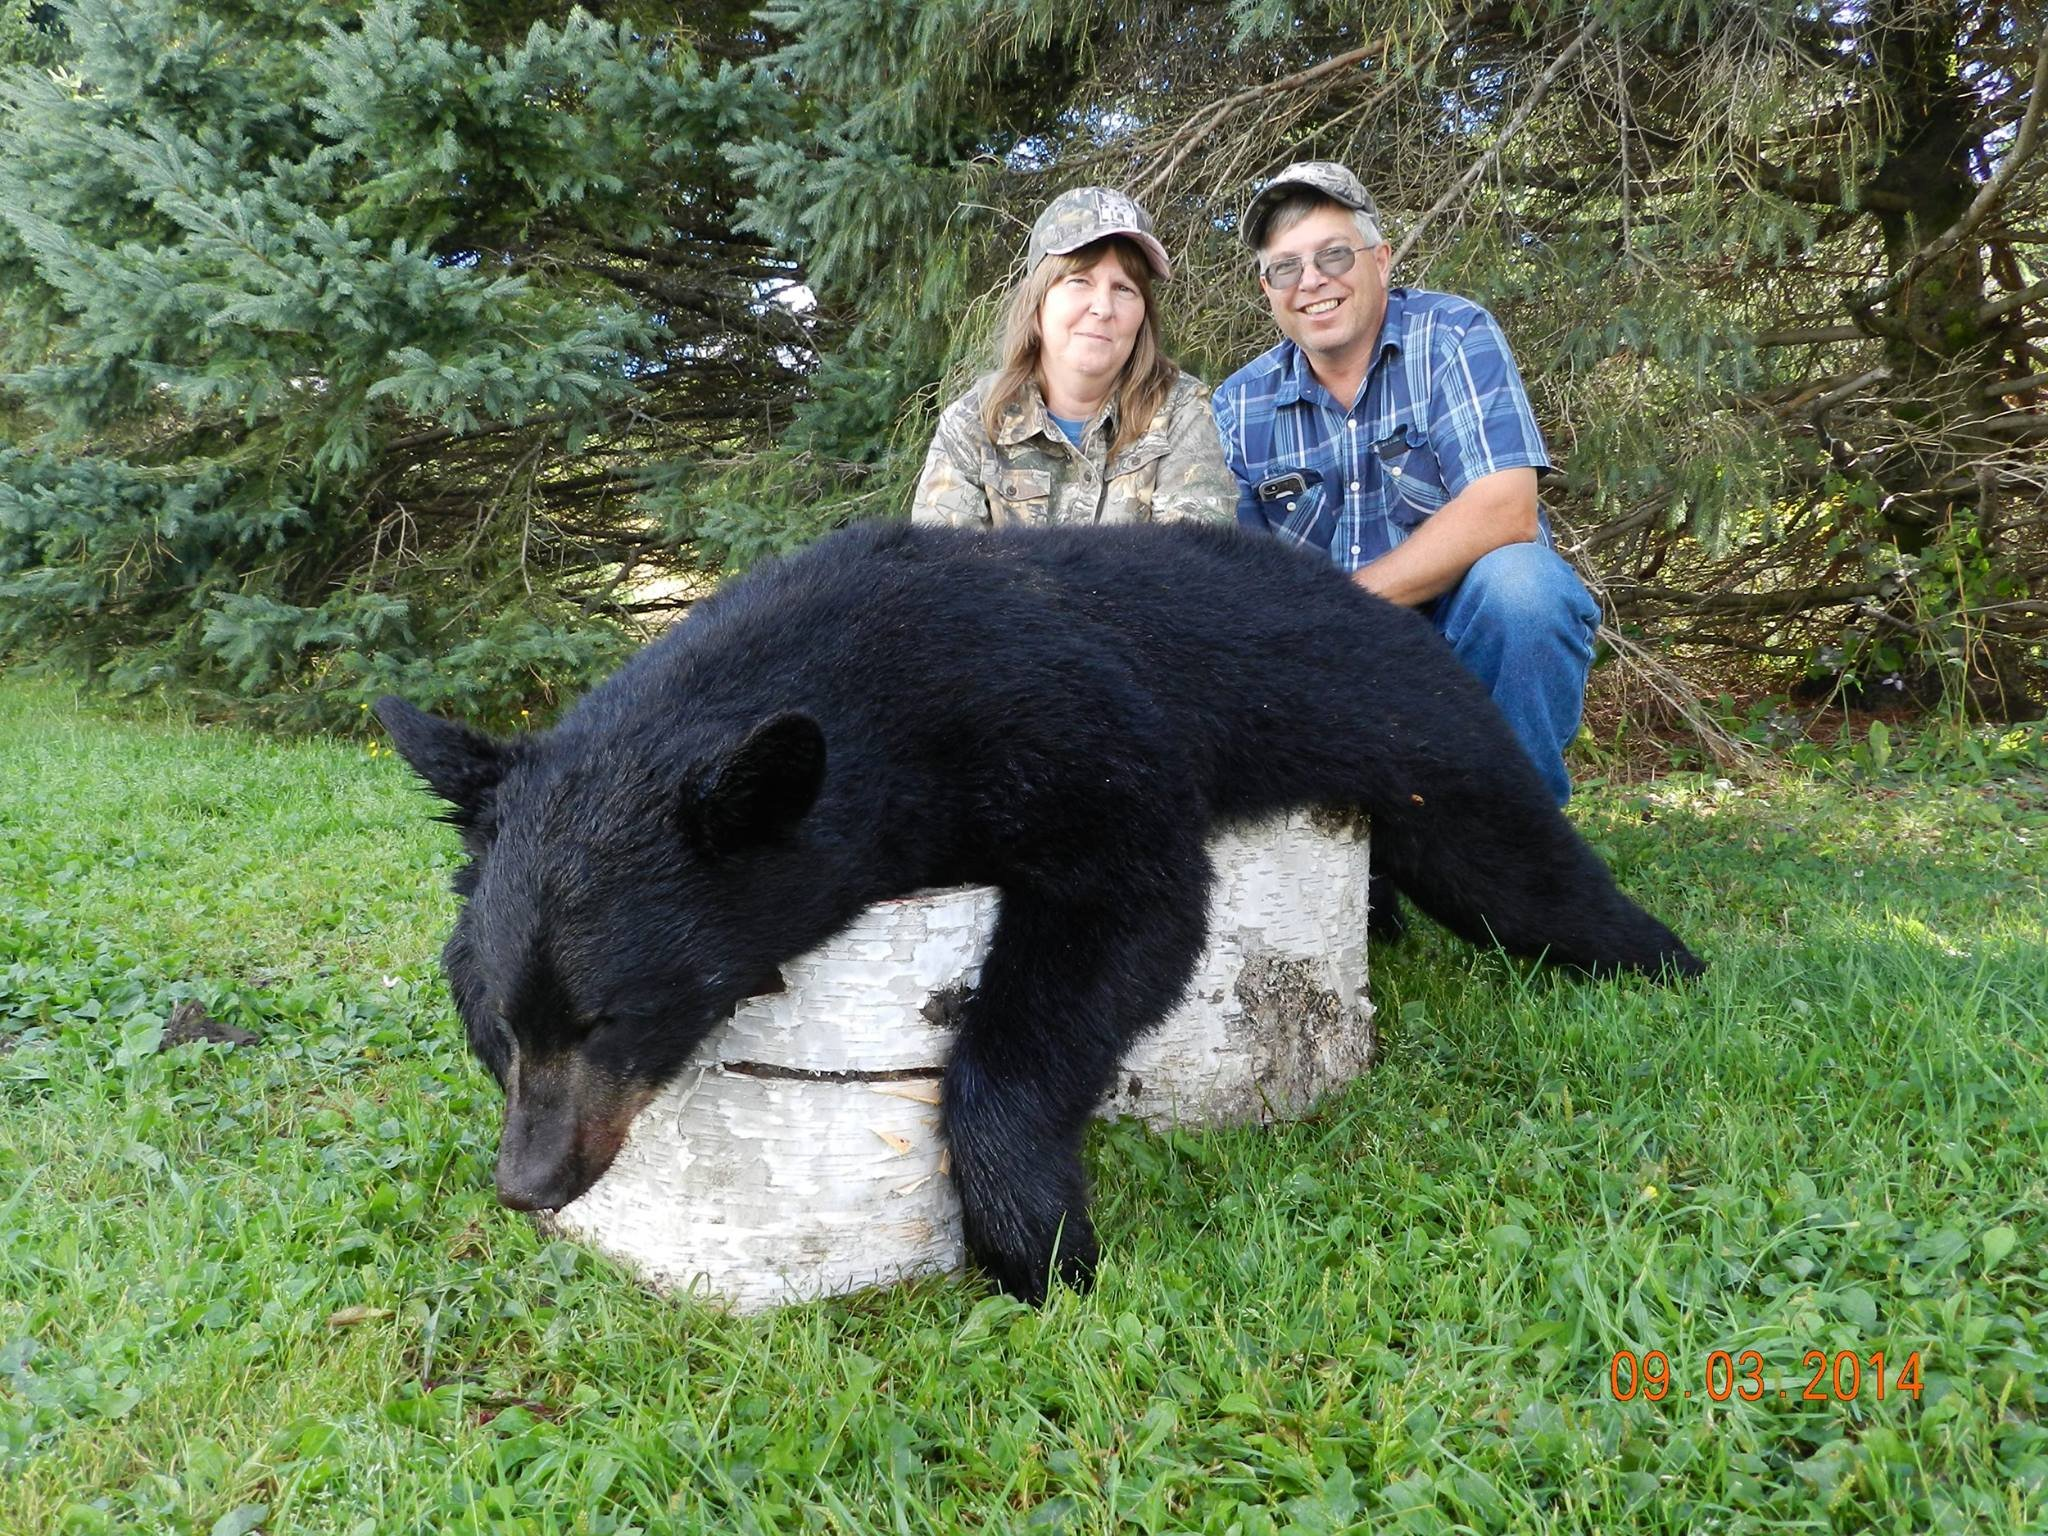 A great location to bring a spouse or young hunters